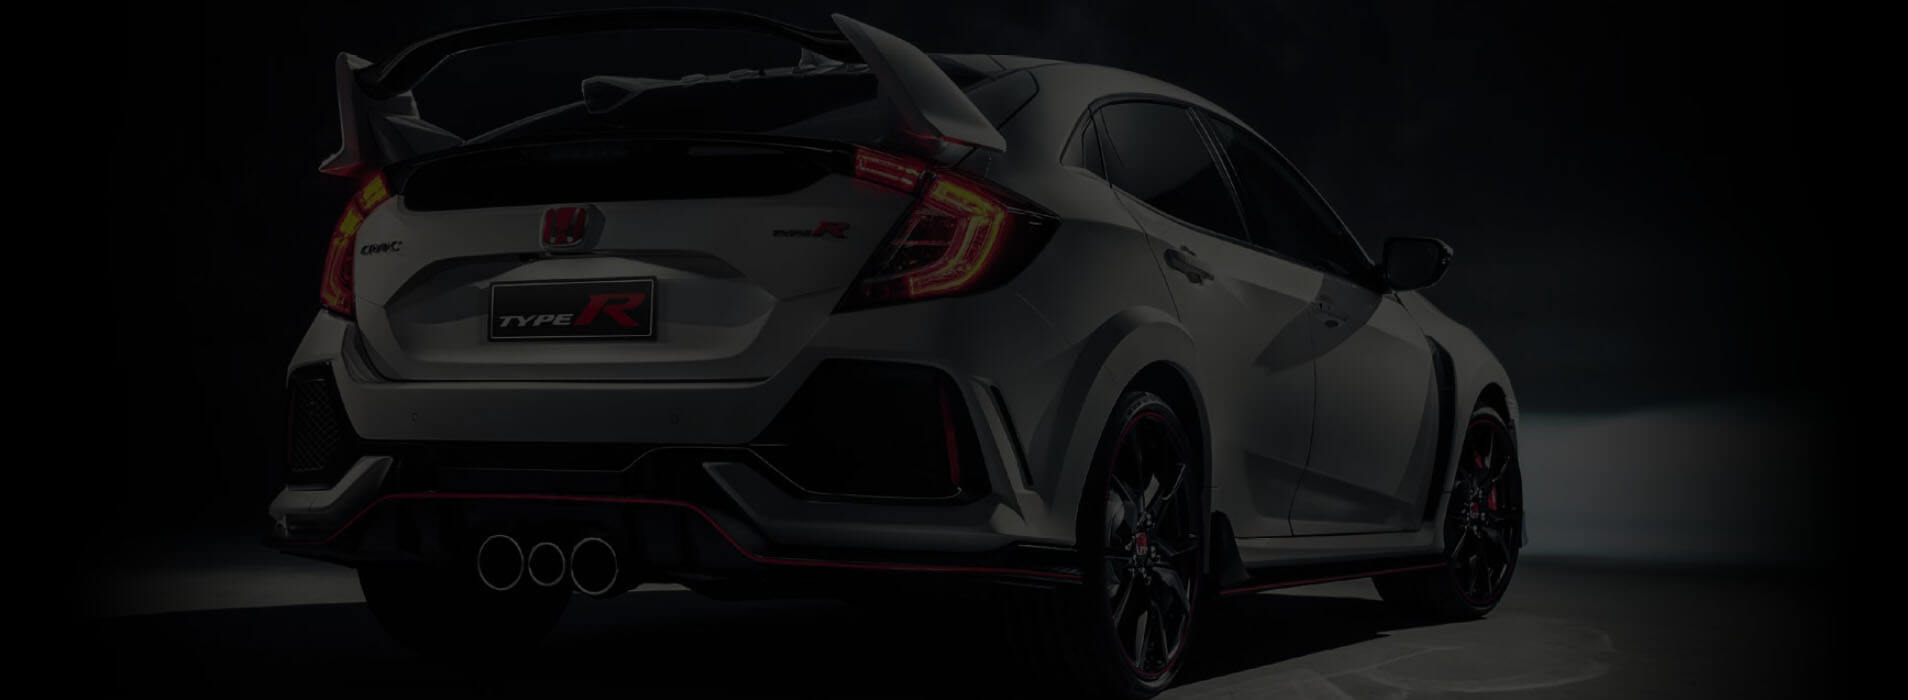 Civic Hatch Type R Features